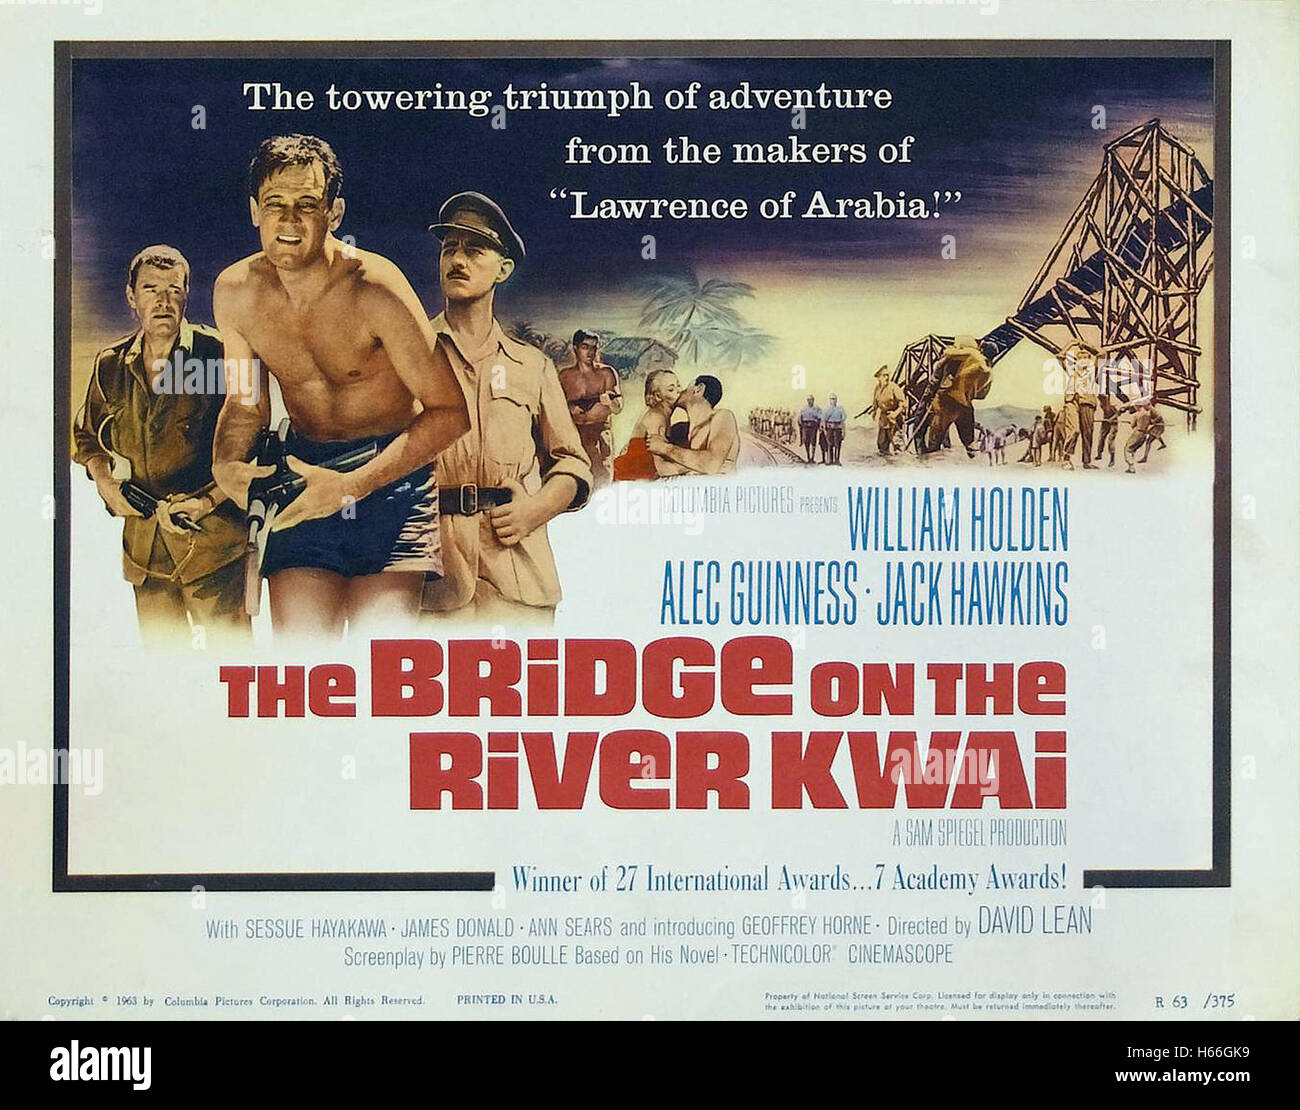 https://i1.wp.com/c8.alamy.com/comp/H66GK9/the-bridge-on-the-river-kwai-movie-poster-H66GK9.jpg